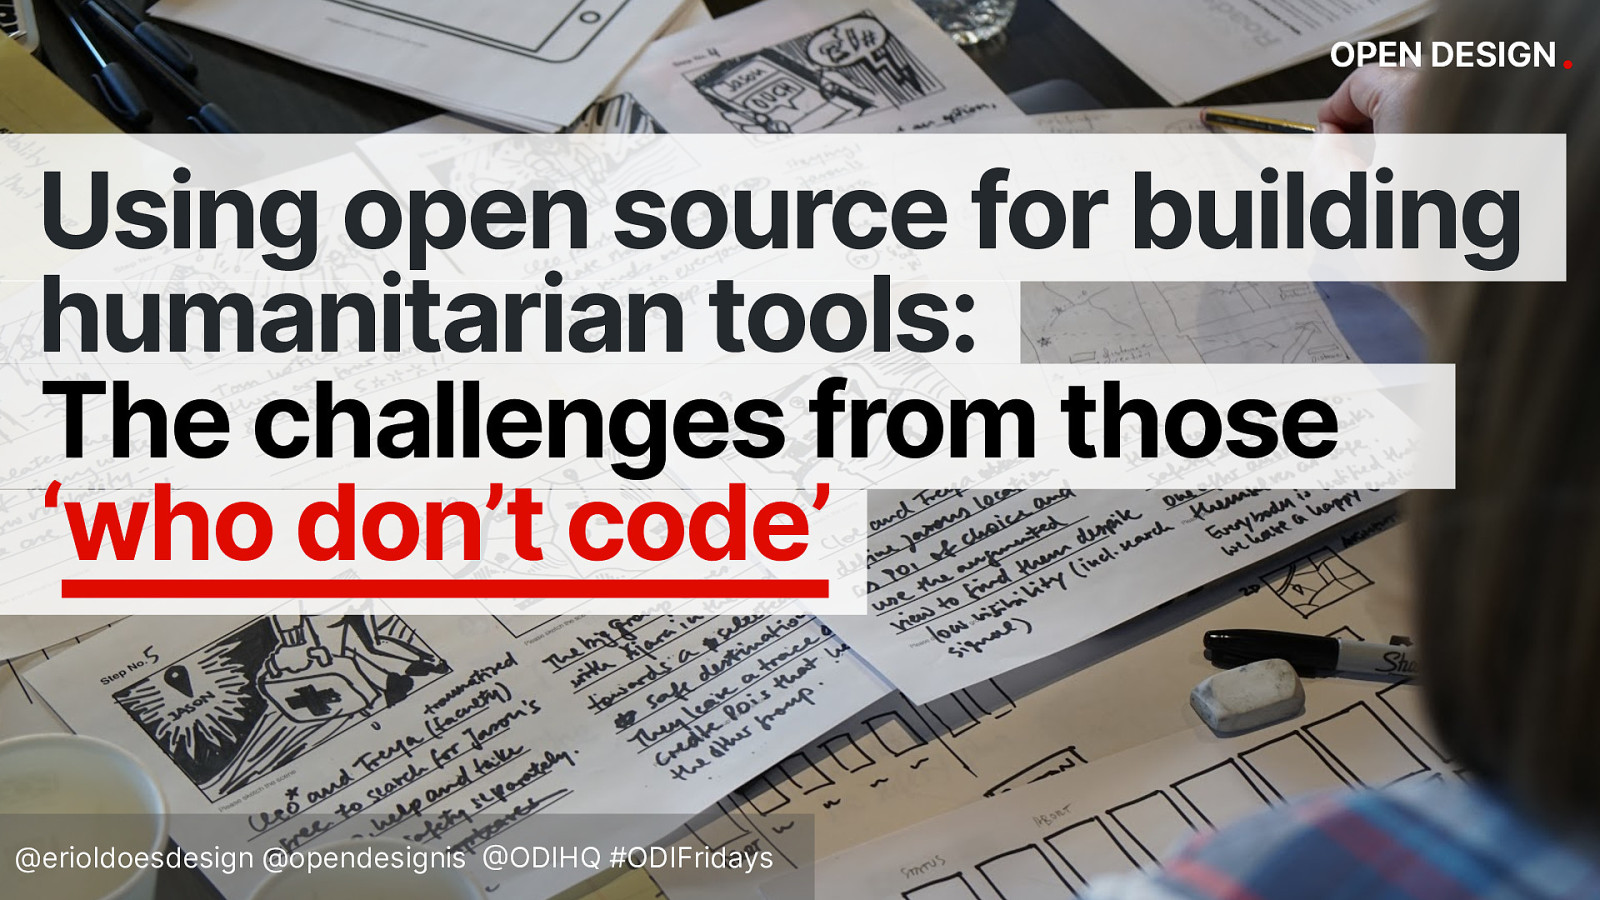 ODI Fridays: The problem with using open source for building humanitarian tools